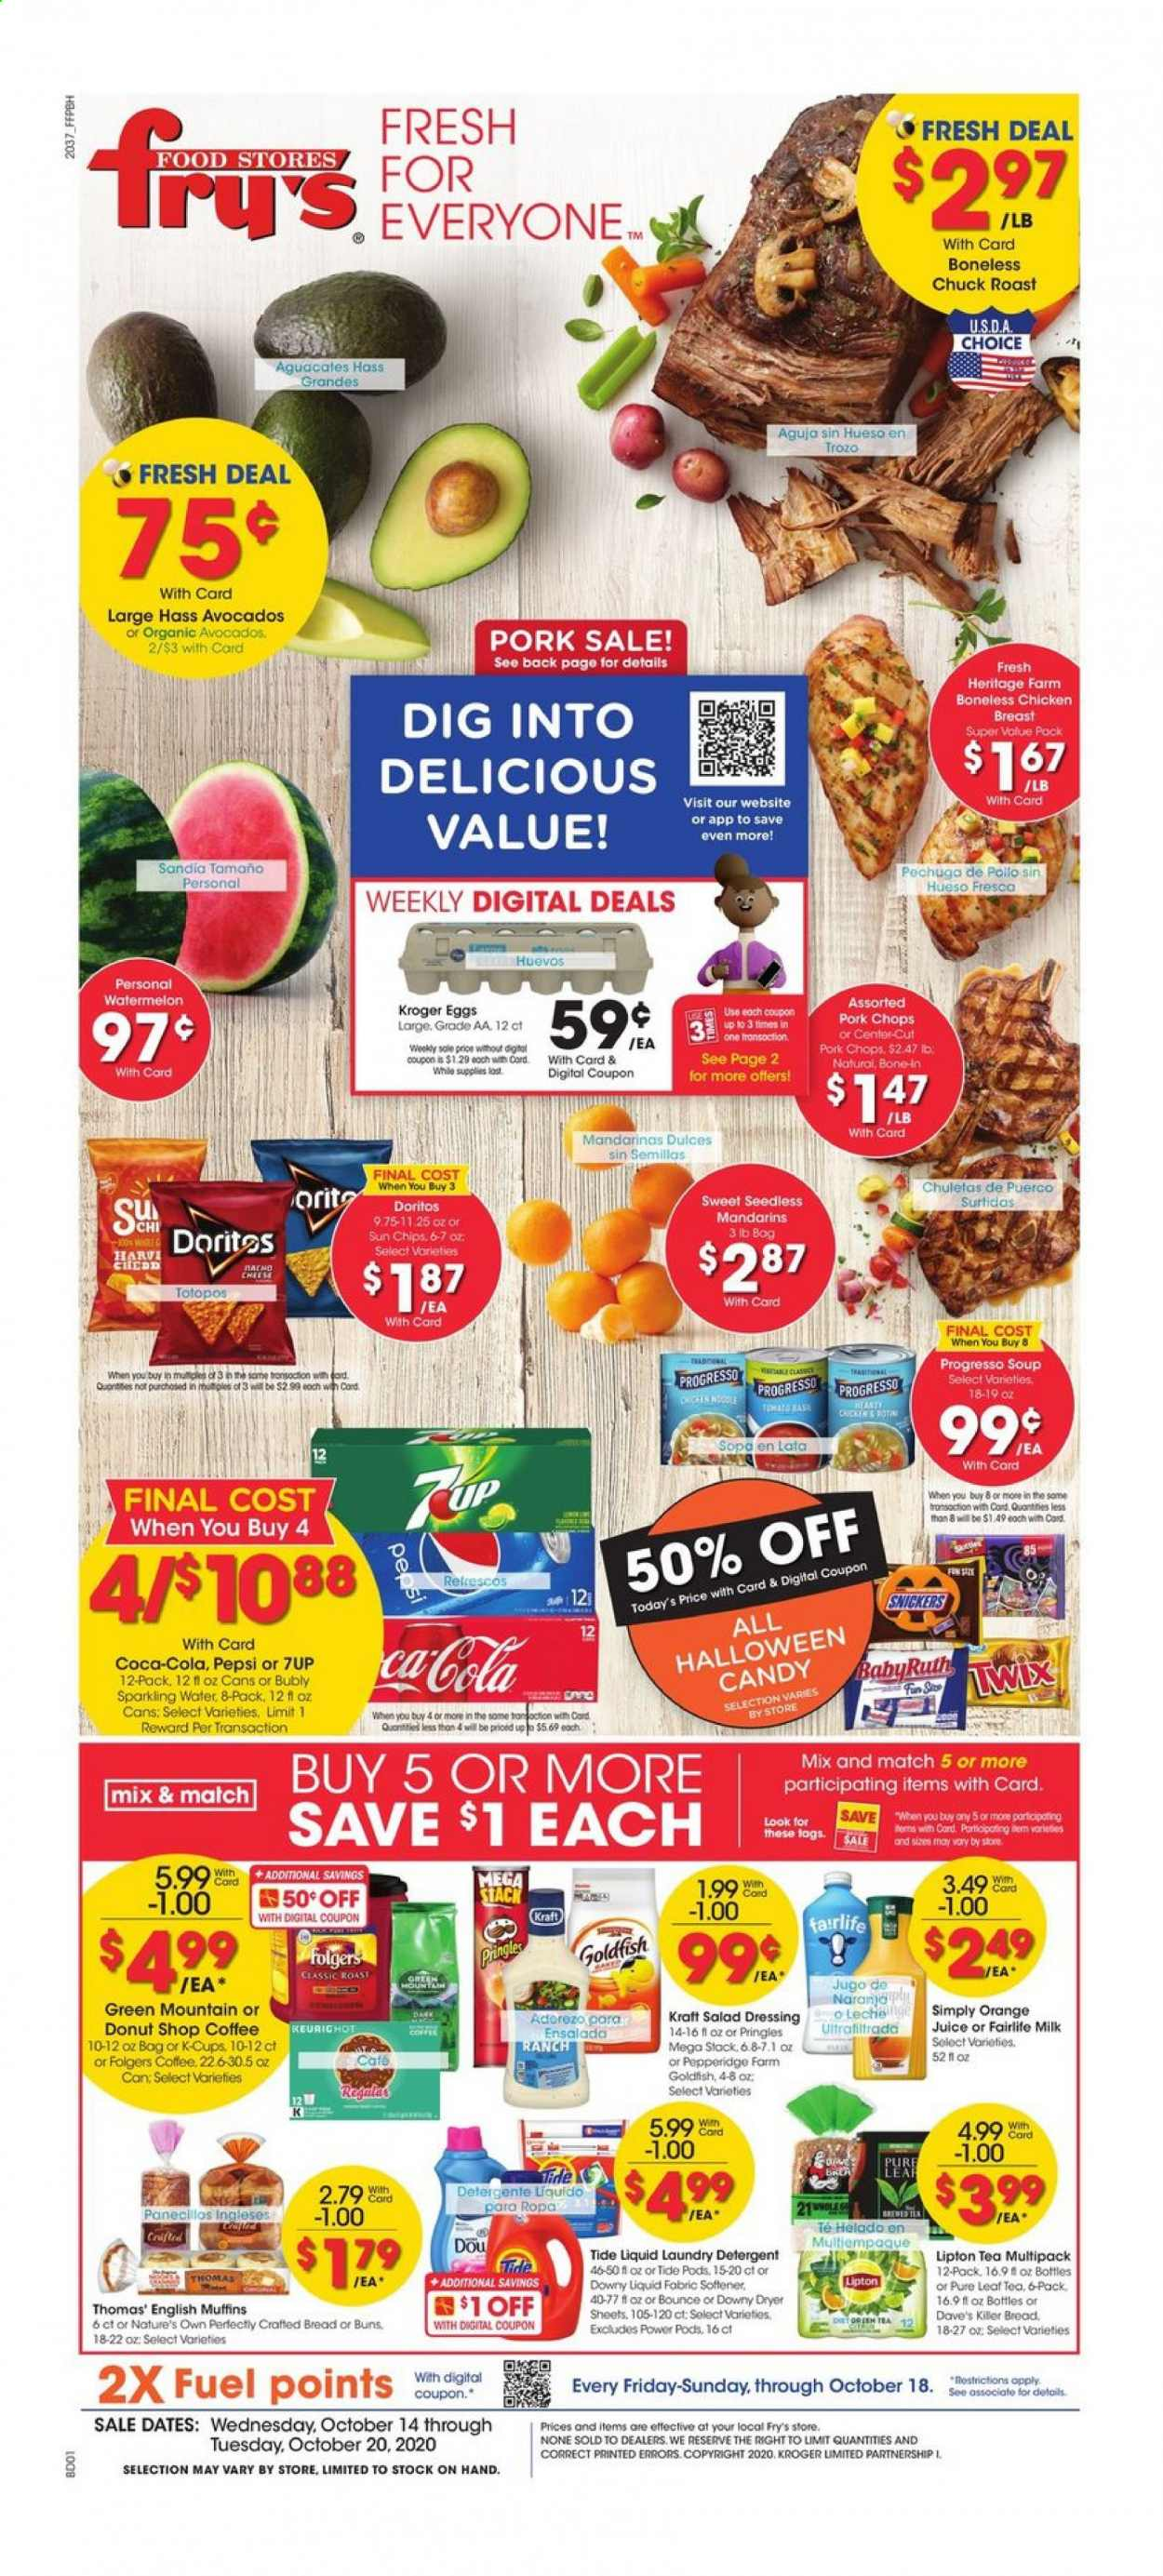 Fry's Flyer - 10.14.2020 - 10.20.2020 - Sales products - avocado, watermelon, orange, bread, donut, muffin, english muffins, soup, salad, cheese, milk, eggs, candy, Snickers, Doritos, Pringles, chips, ranch dressing, dressing, salad dressing, Coca-Cola, Pepsi, juice, Lipton, sparkling water, water, tea, coffee, Folgers, chicken, pork chops, pork meat, detergent, Downy, Tide, softener, laundry detergent, muffins. Page 1.